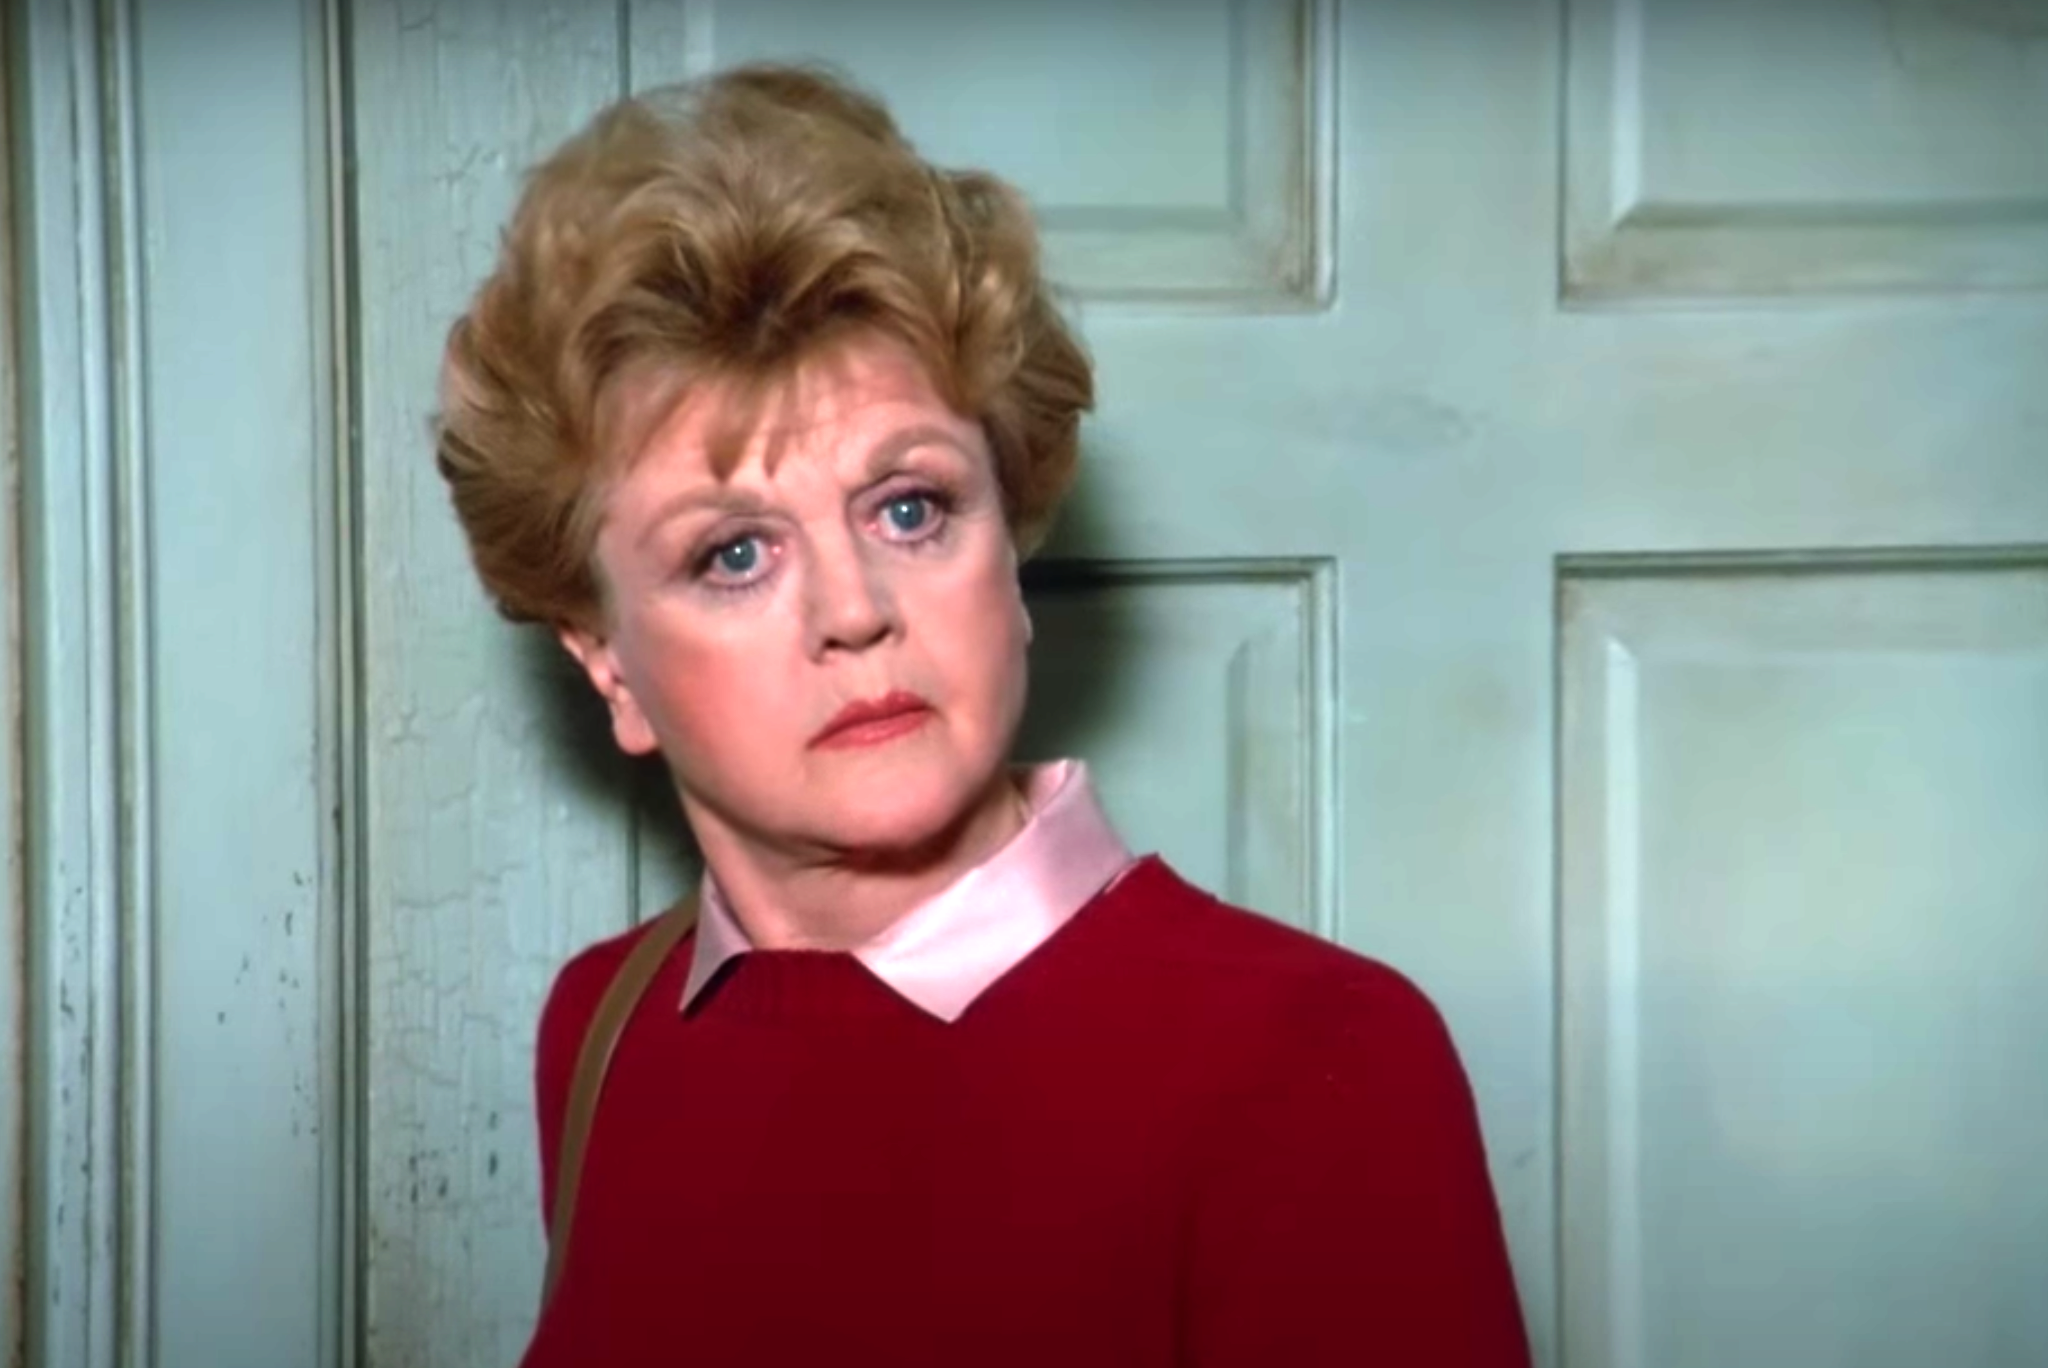 """Screenshot from """"Murder, She Wrote,"""" showing Jessica Fletcher standing in front of a mint green door looking quizzical and wearing a pink collared blouse and maroon sweater"""